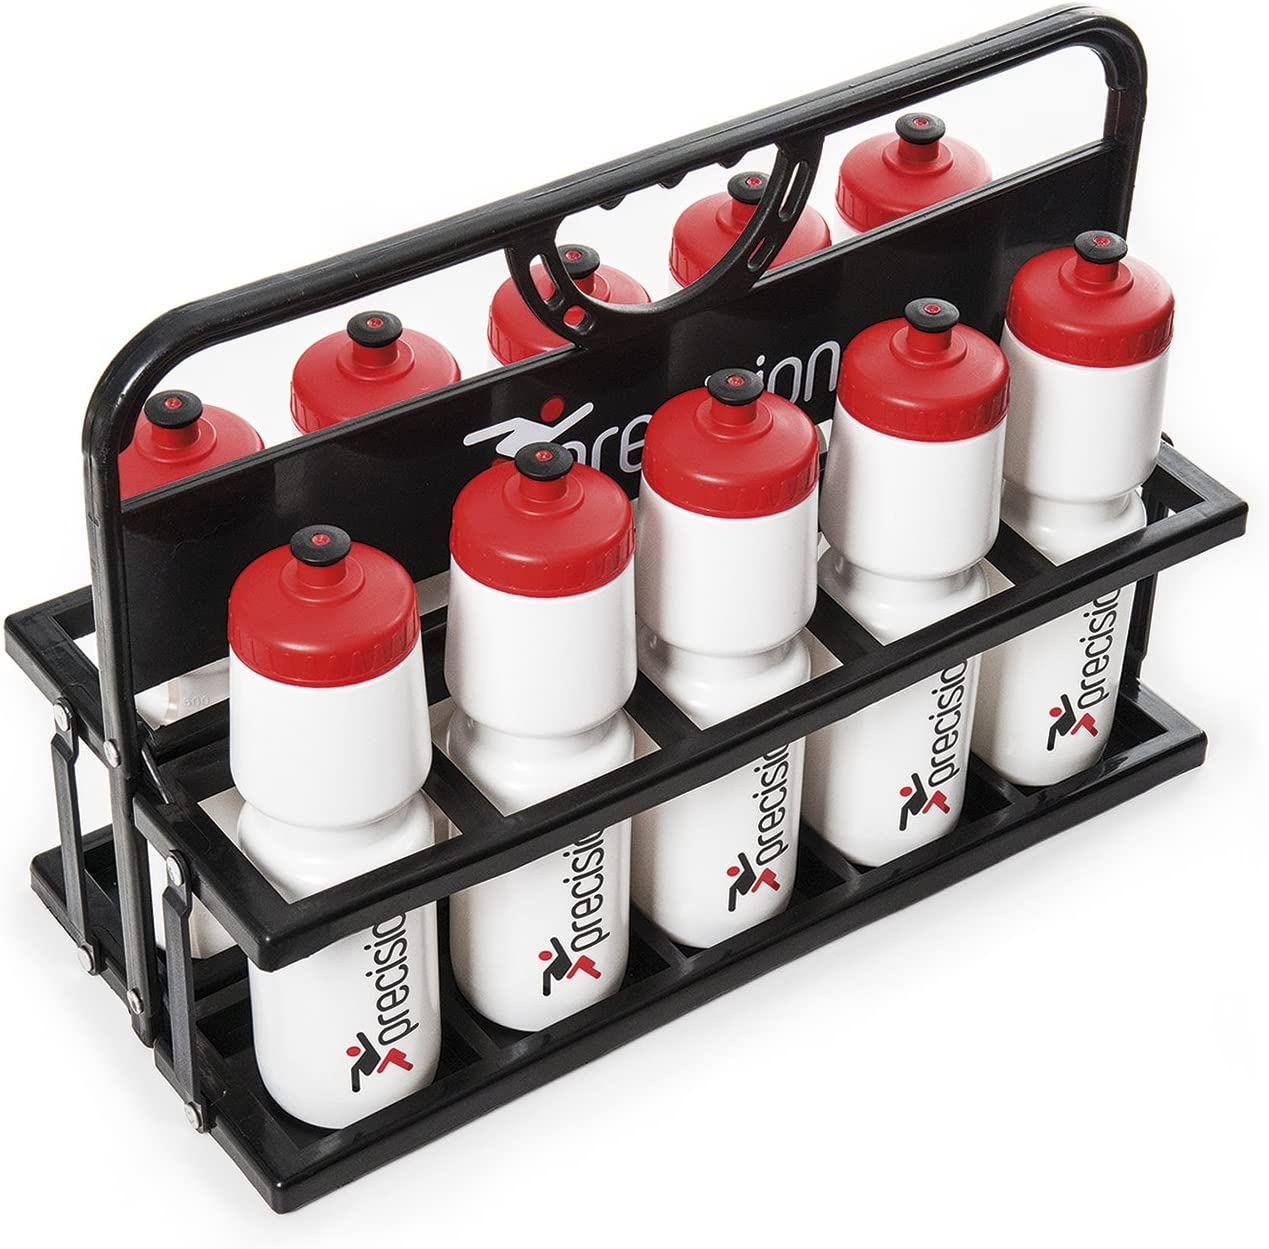 15 x PRECISION DRINKS BOTTLES CARRIER TRAY